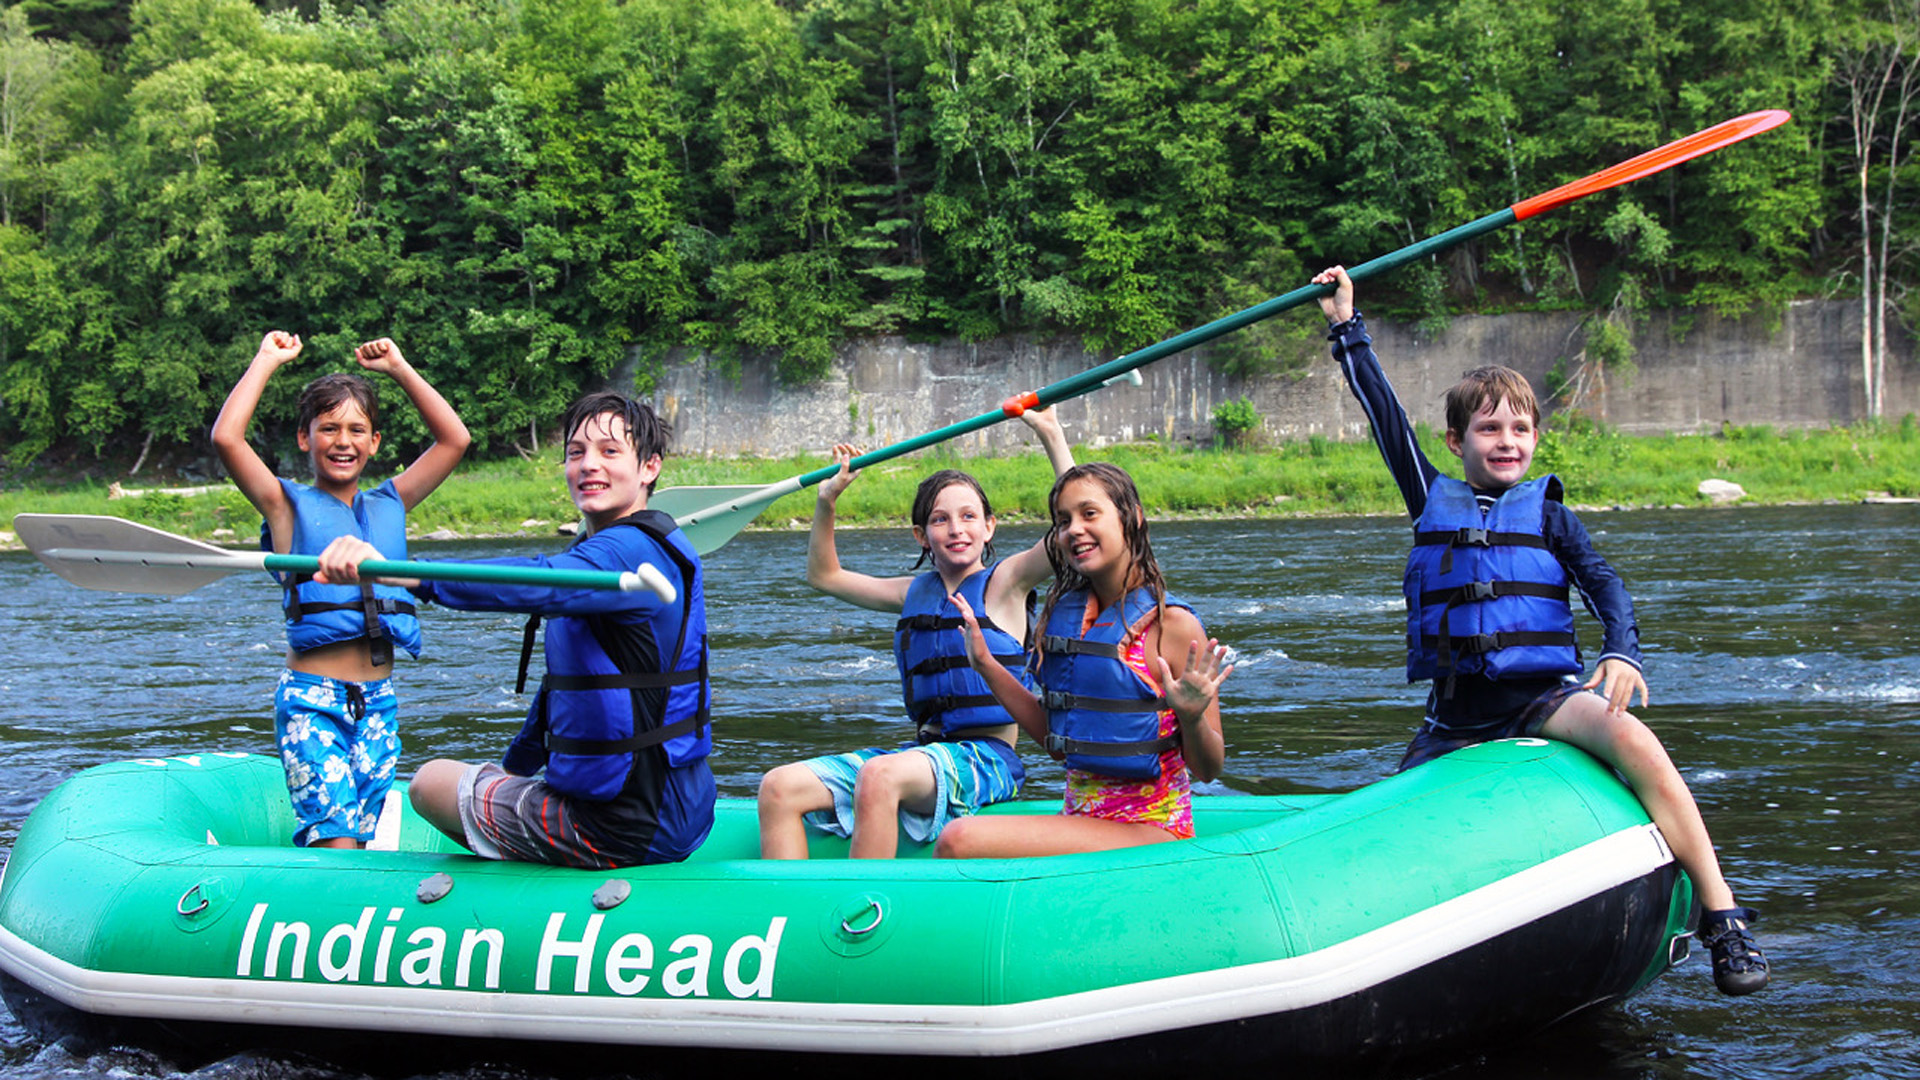 kids in raft celebrate after arriving to shore Indian Head Canoeing Rafting Kayaking Tubing Delaware River